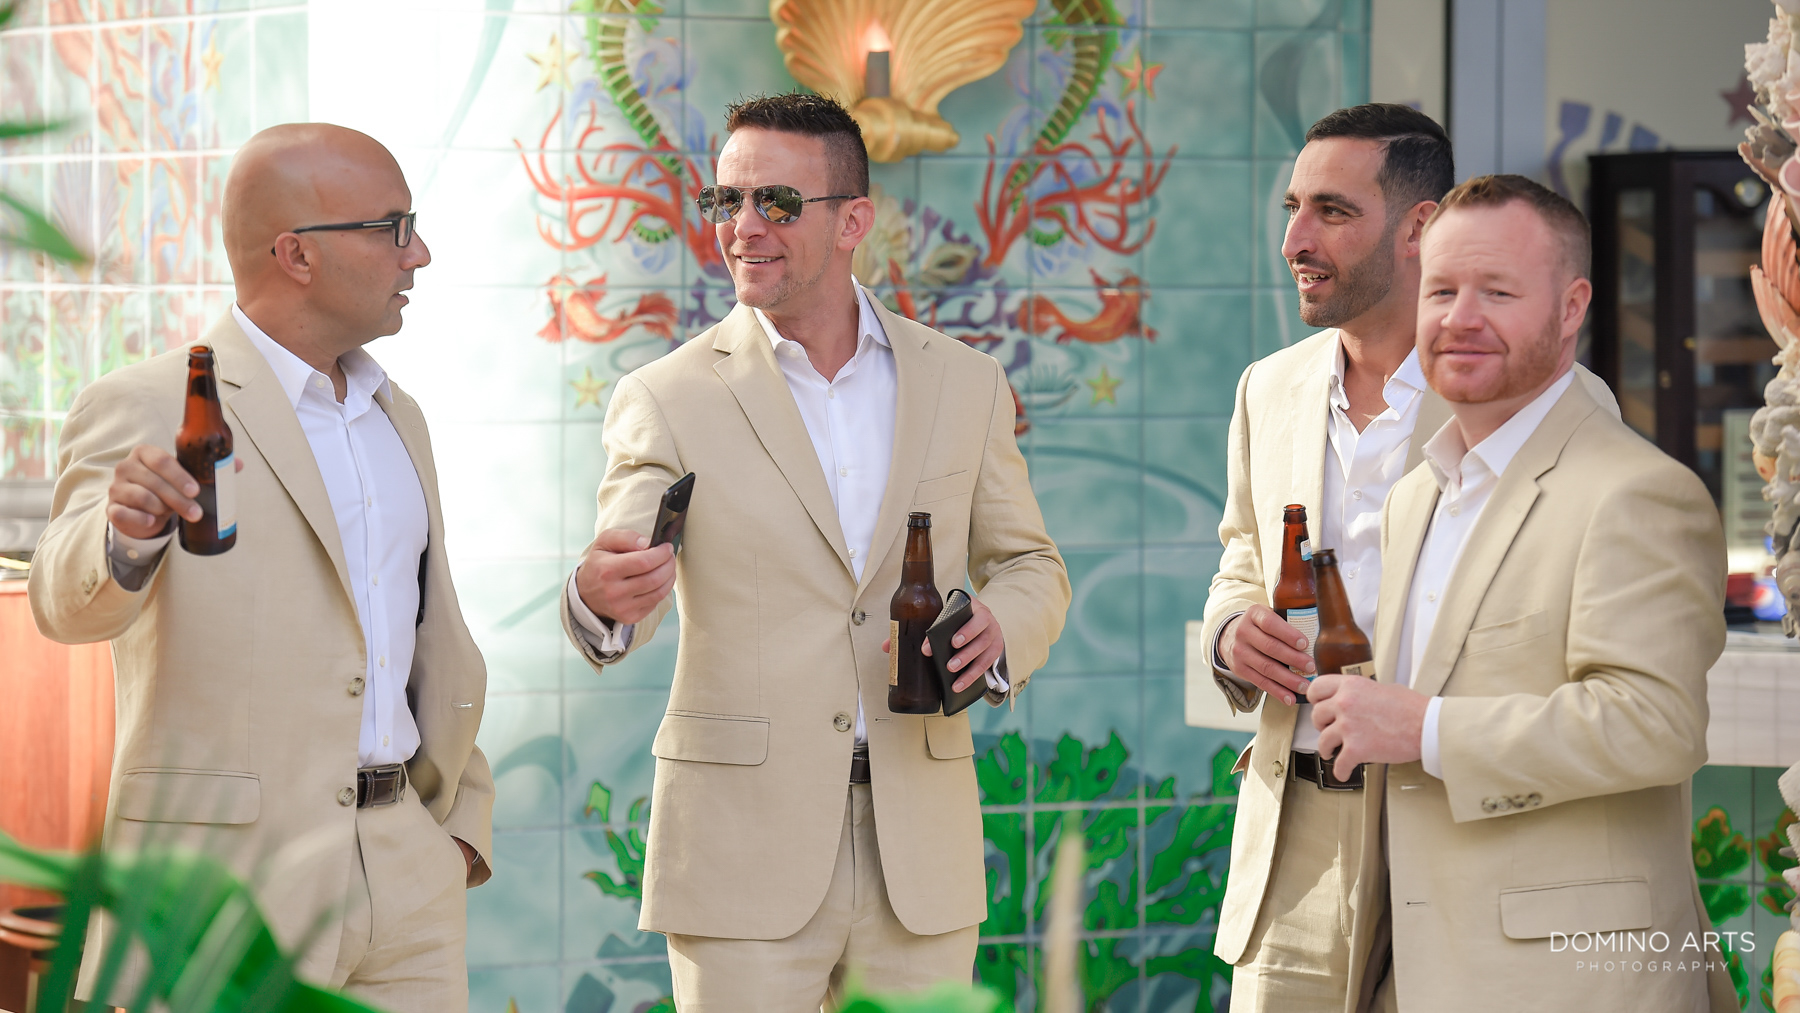 Casual grooms men at Luxury Destination Beach Wedding Photography at Faena Hotel